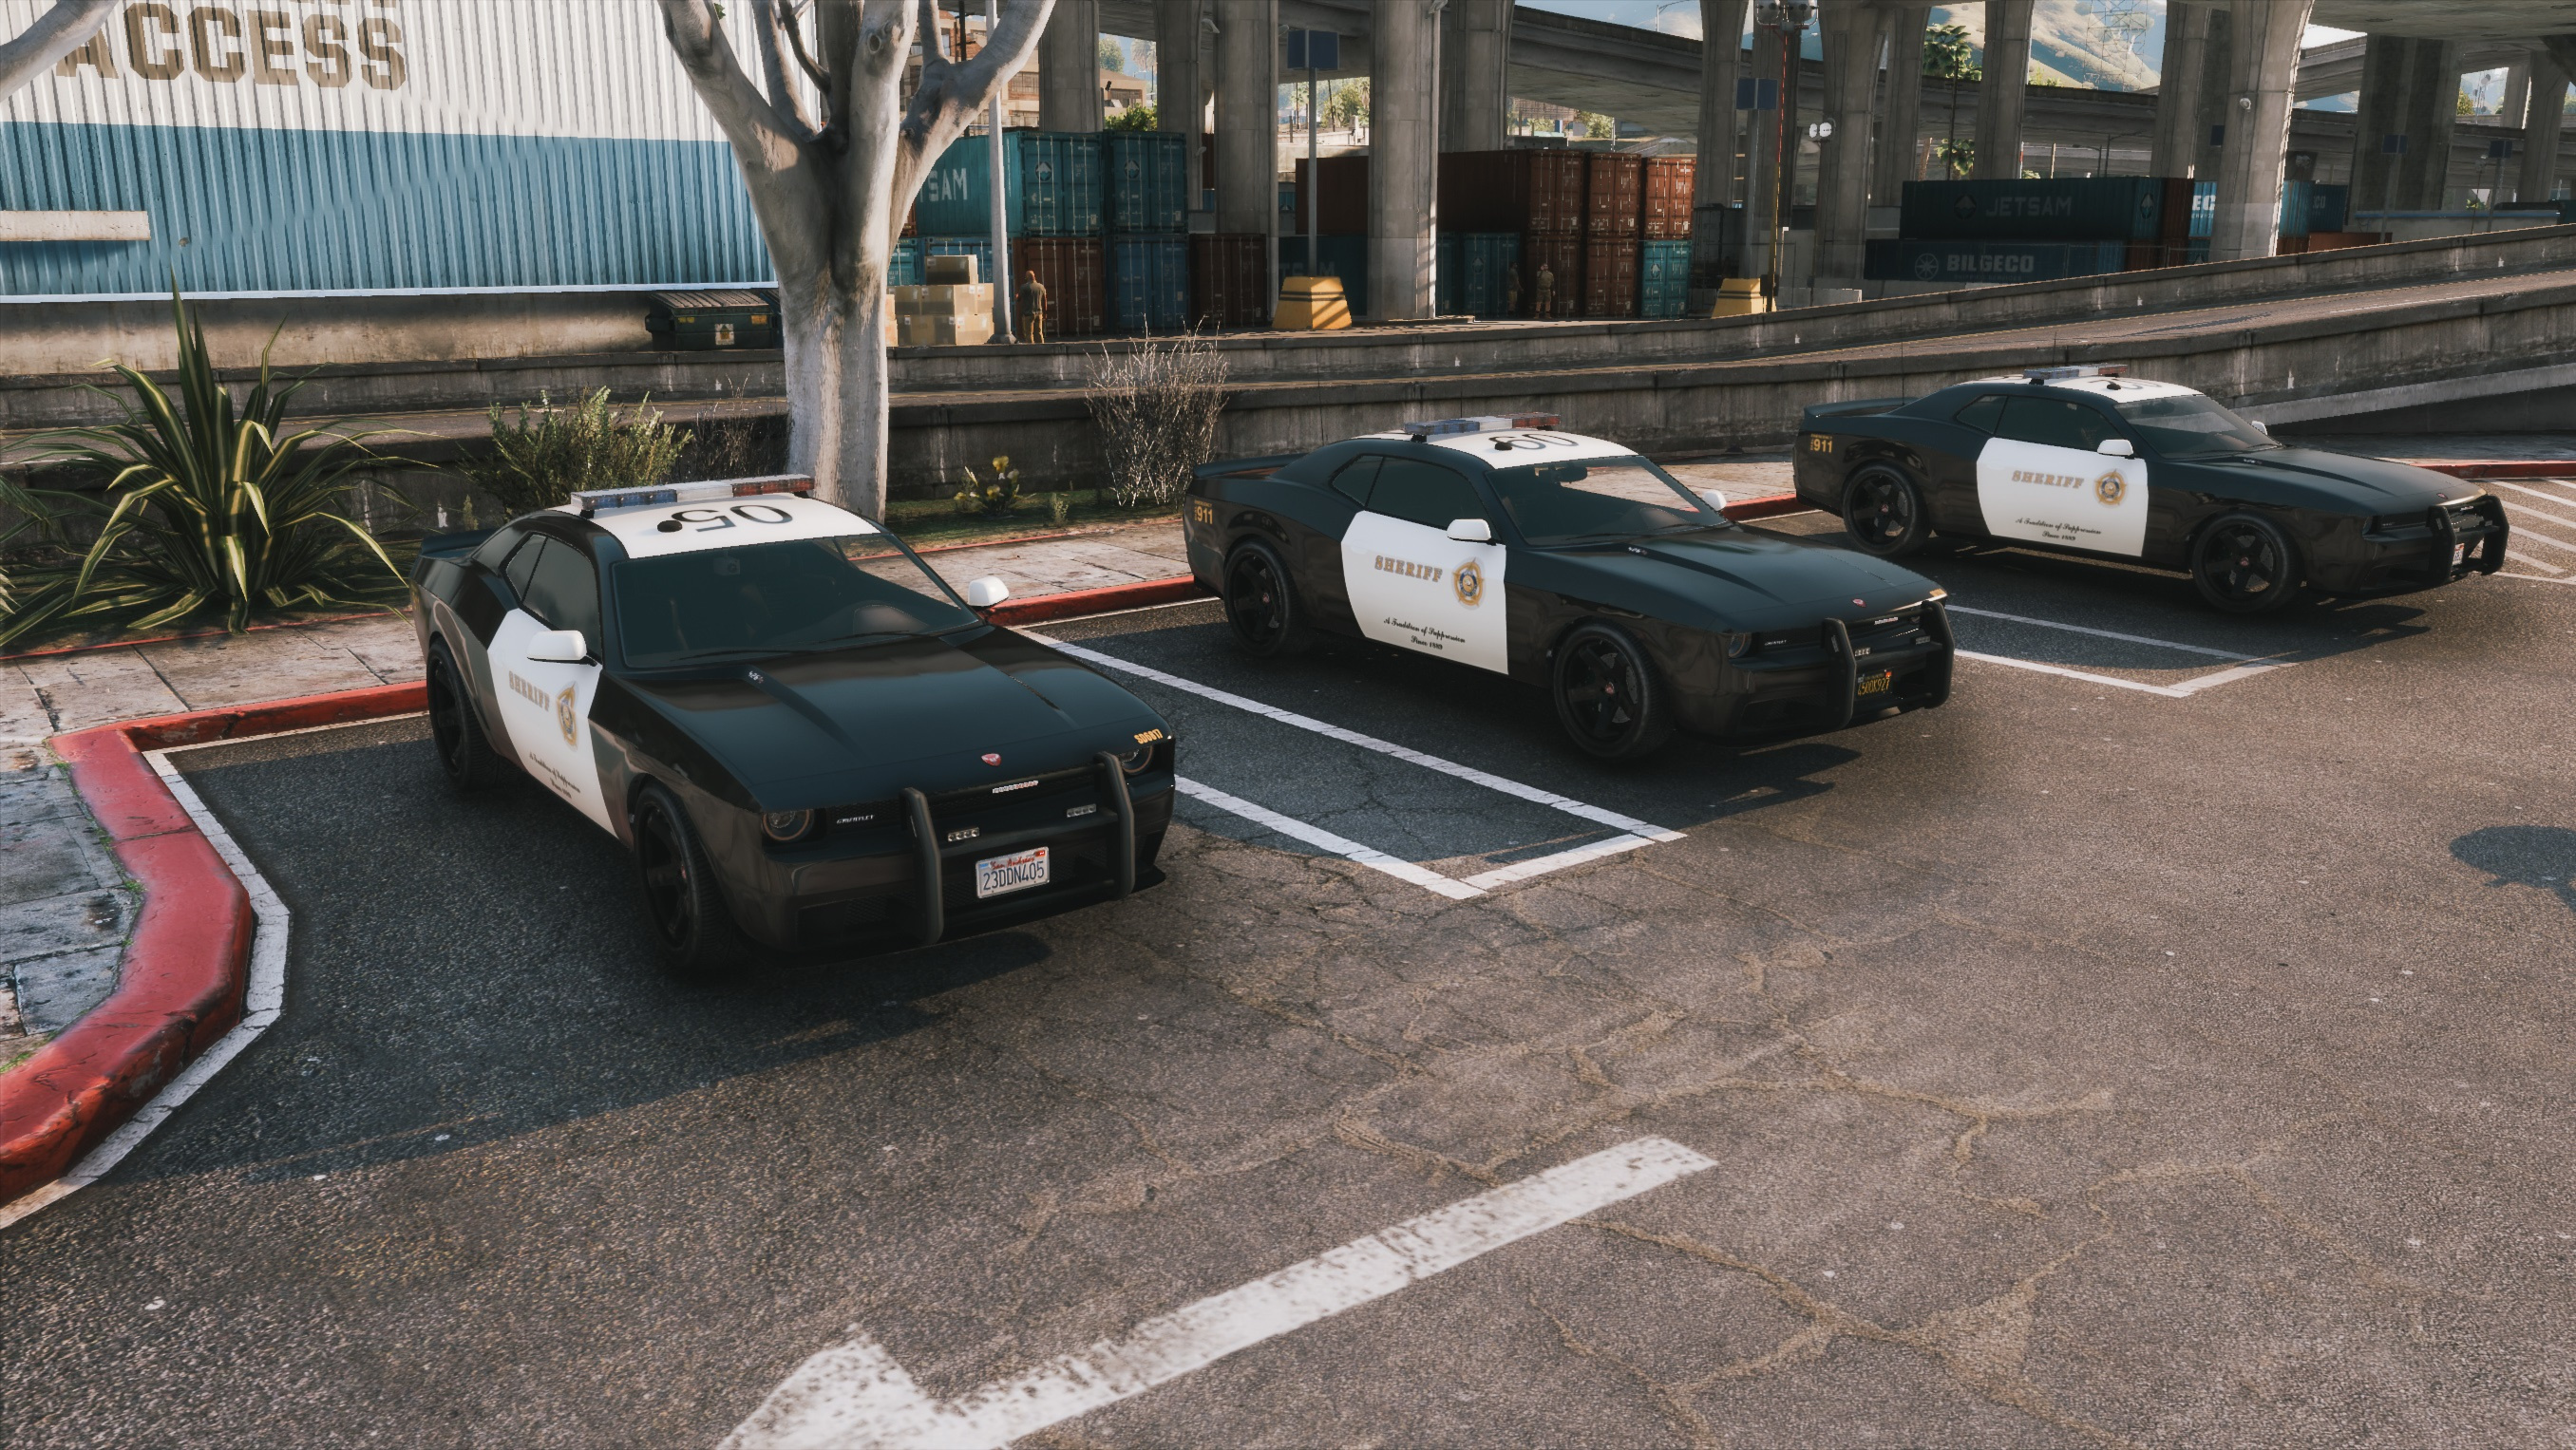 7410a3-Grand_Theft_Auto_V_Screenshot_201